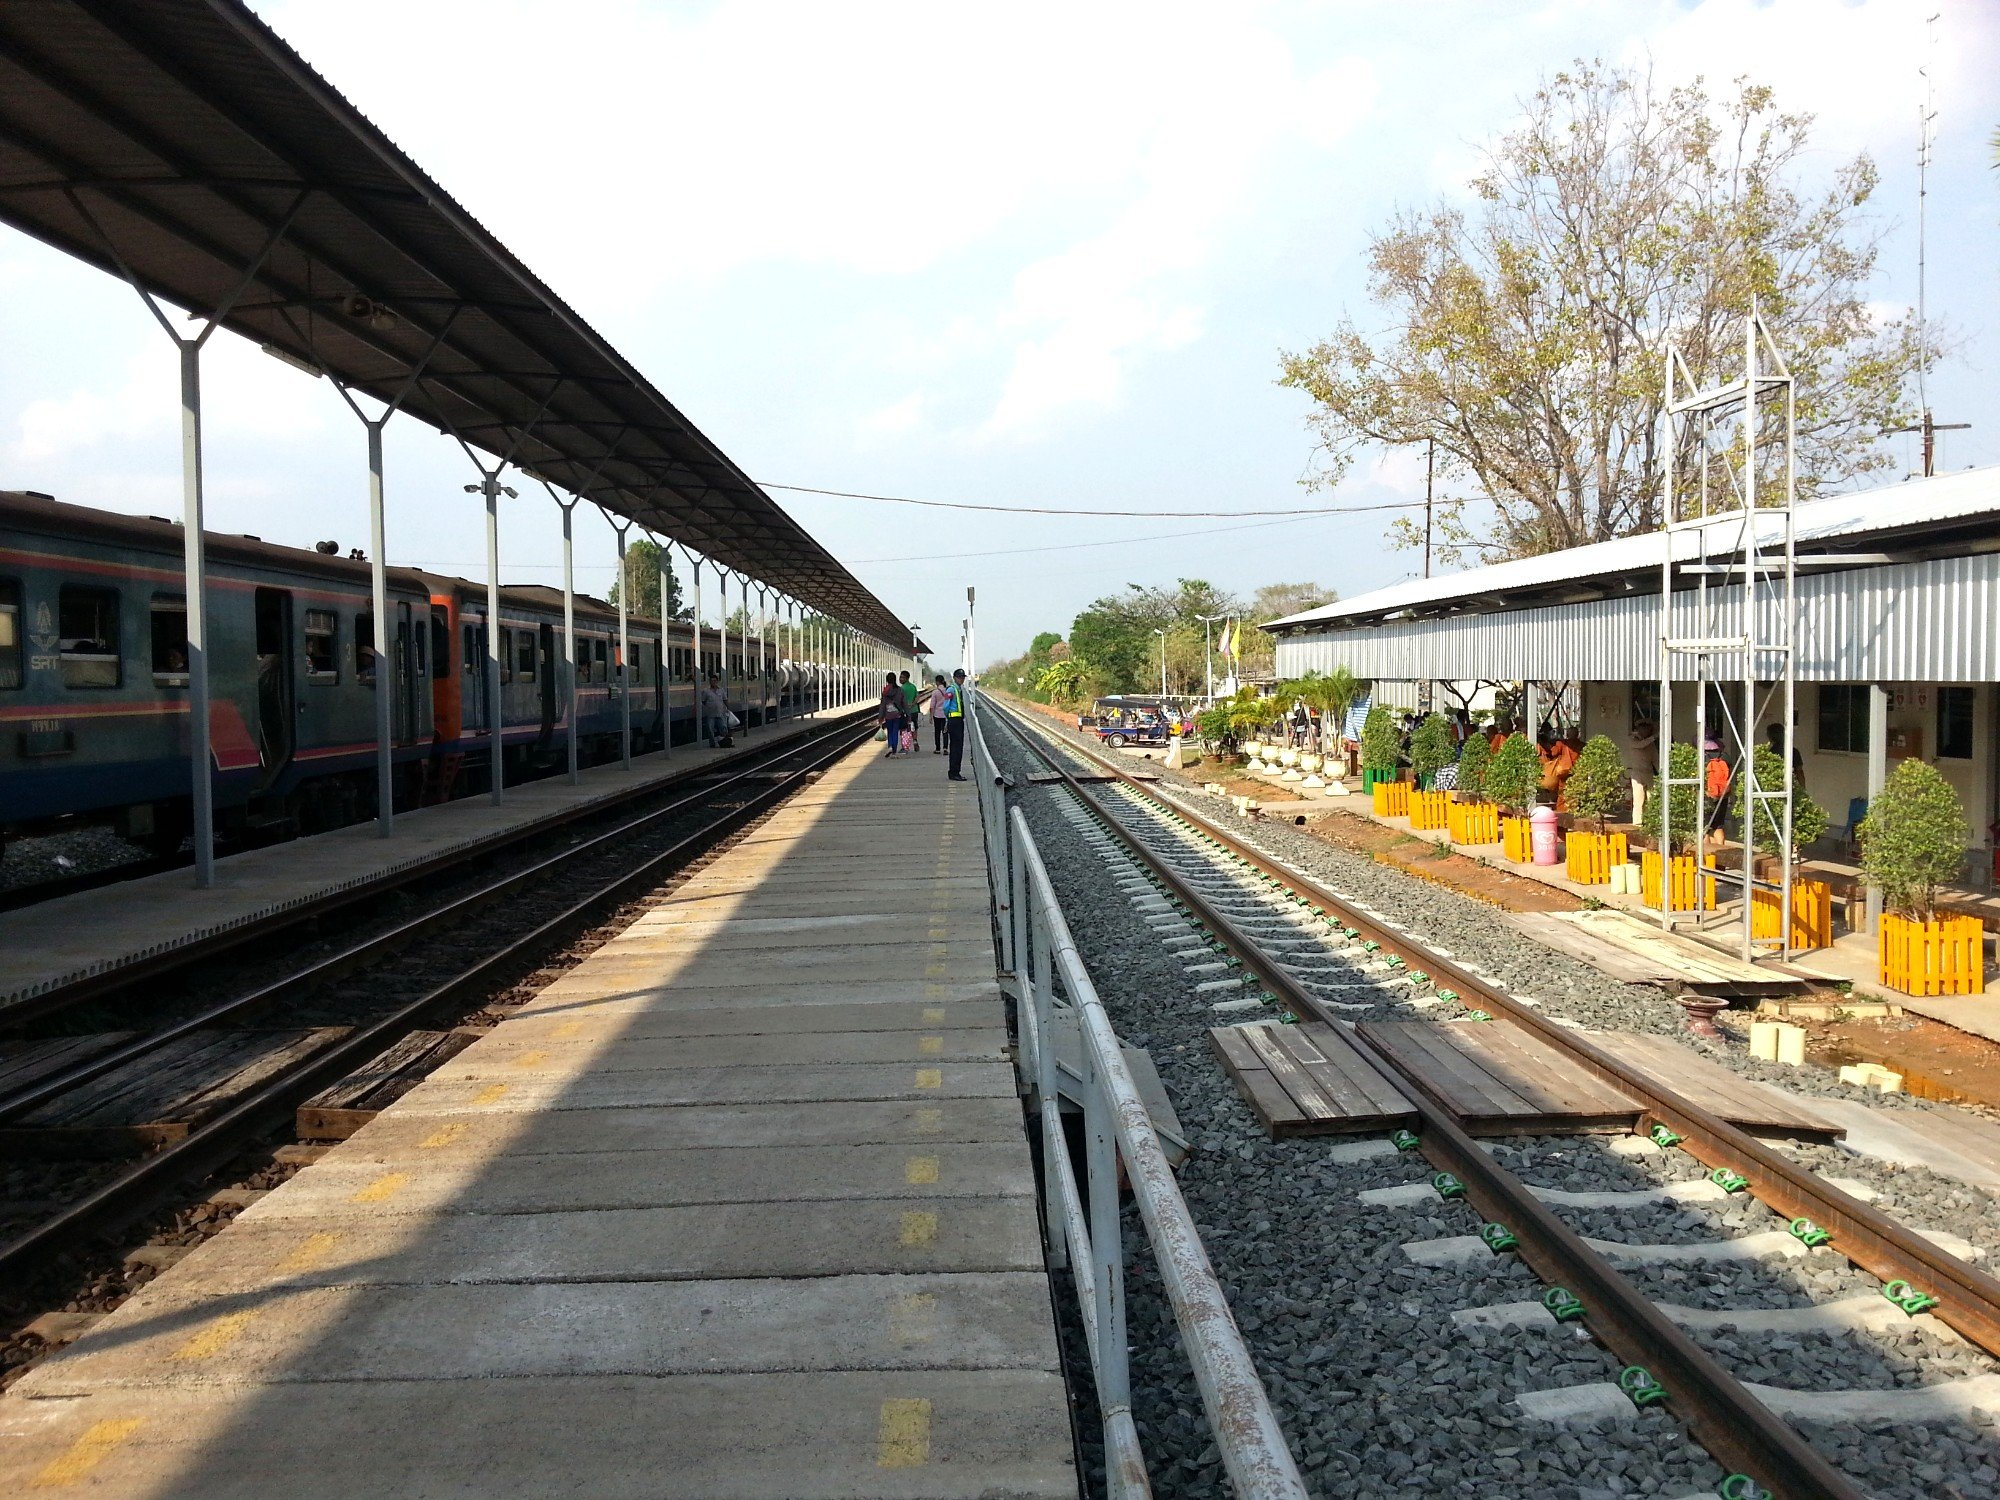 Platform at Khon Kaen Railway Station